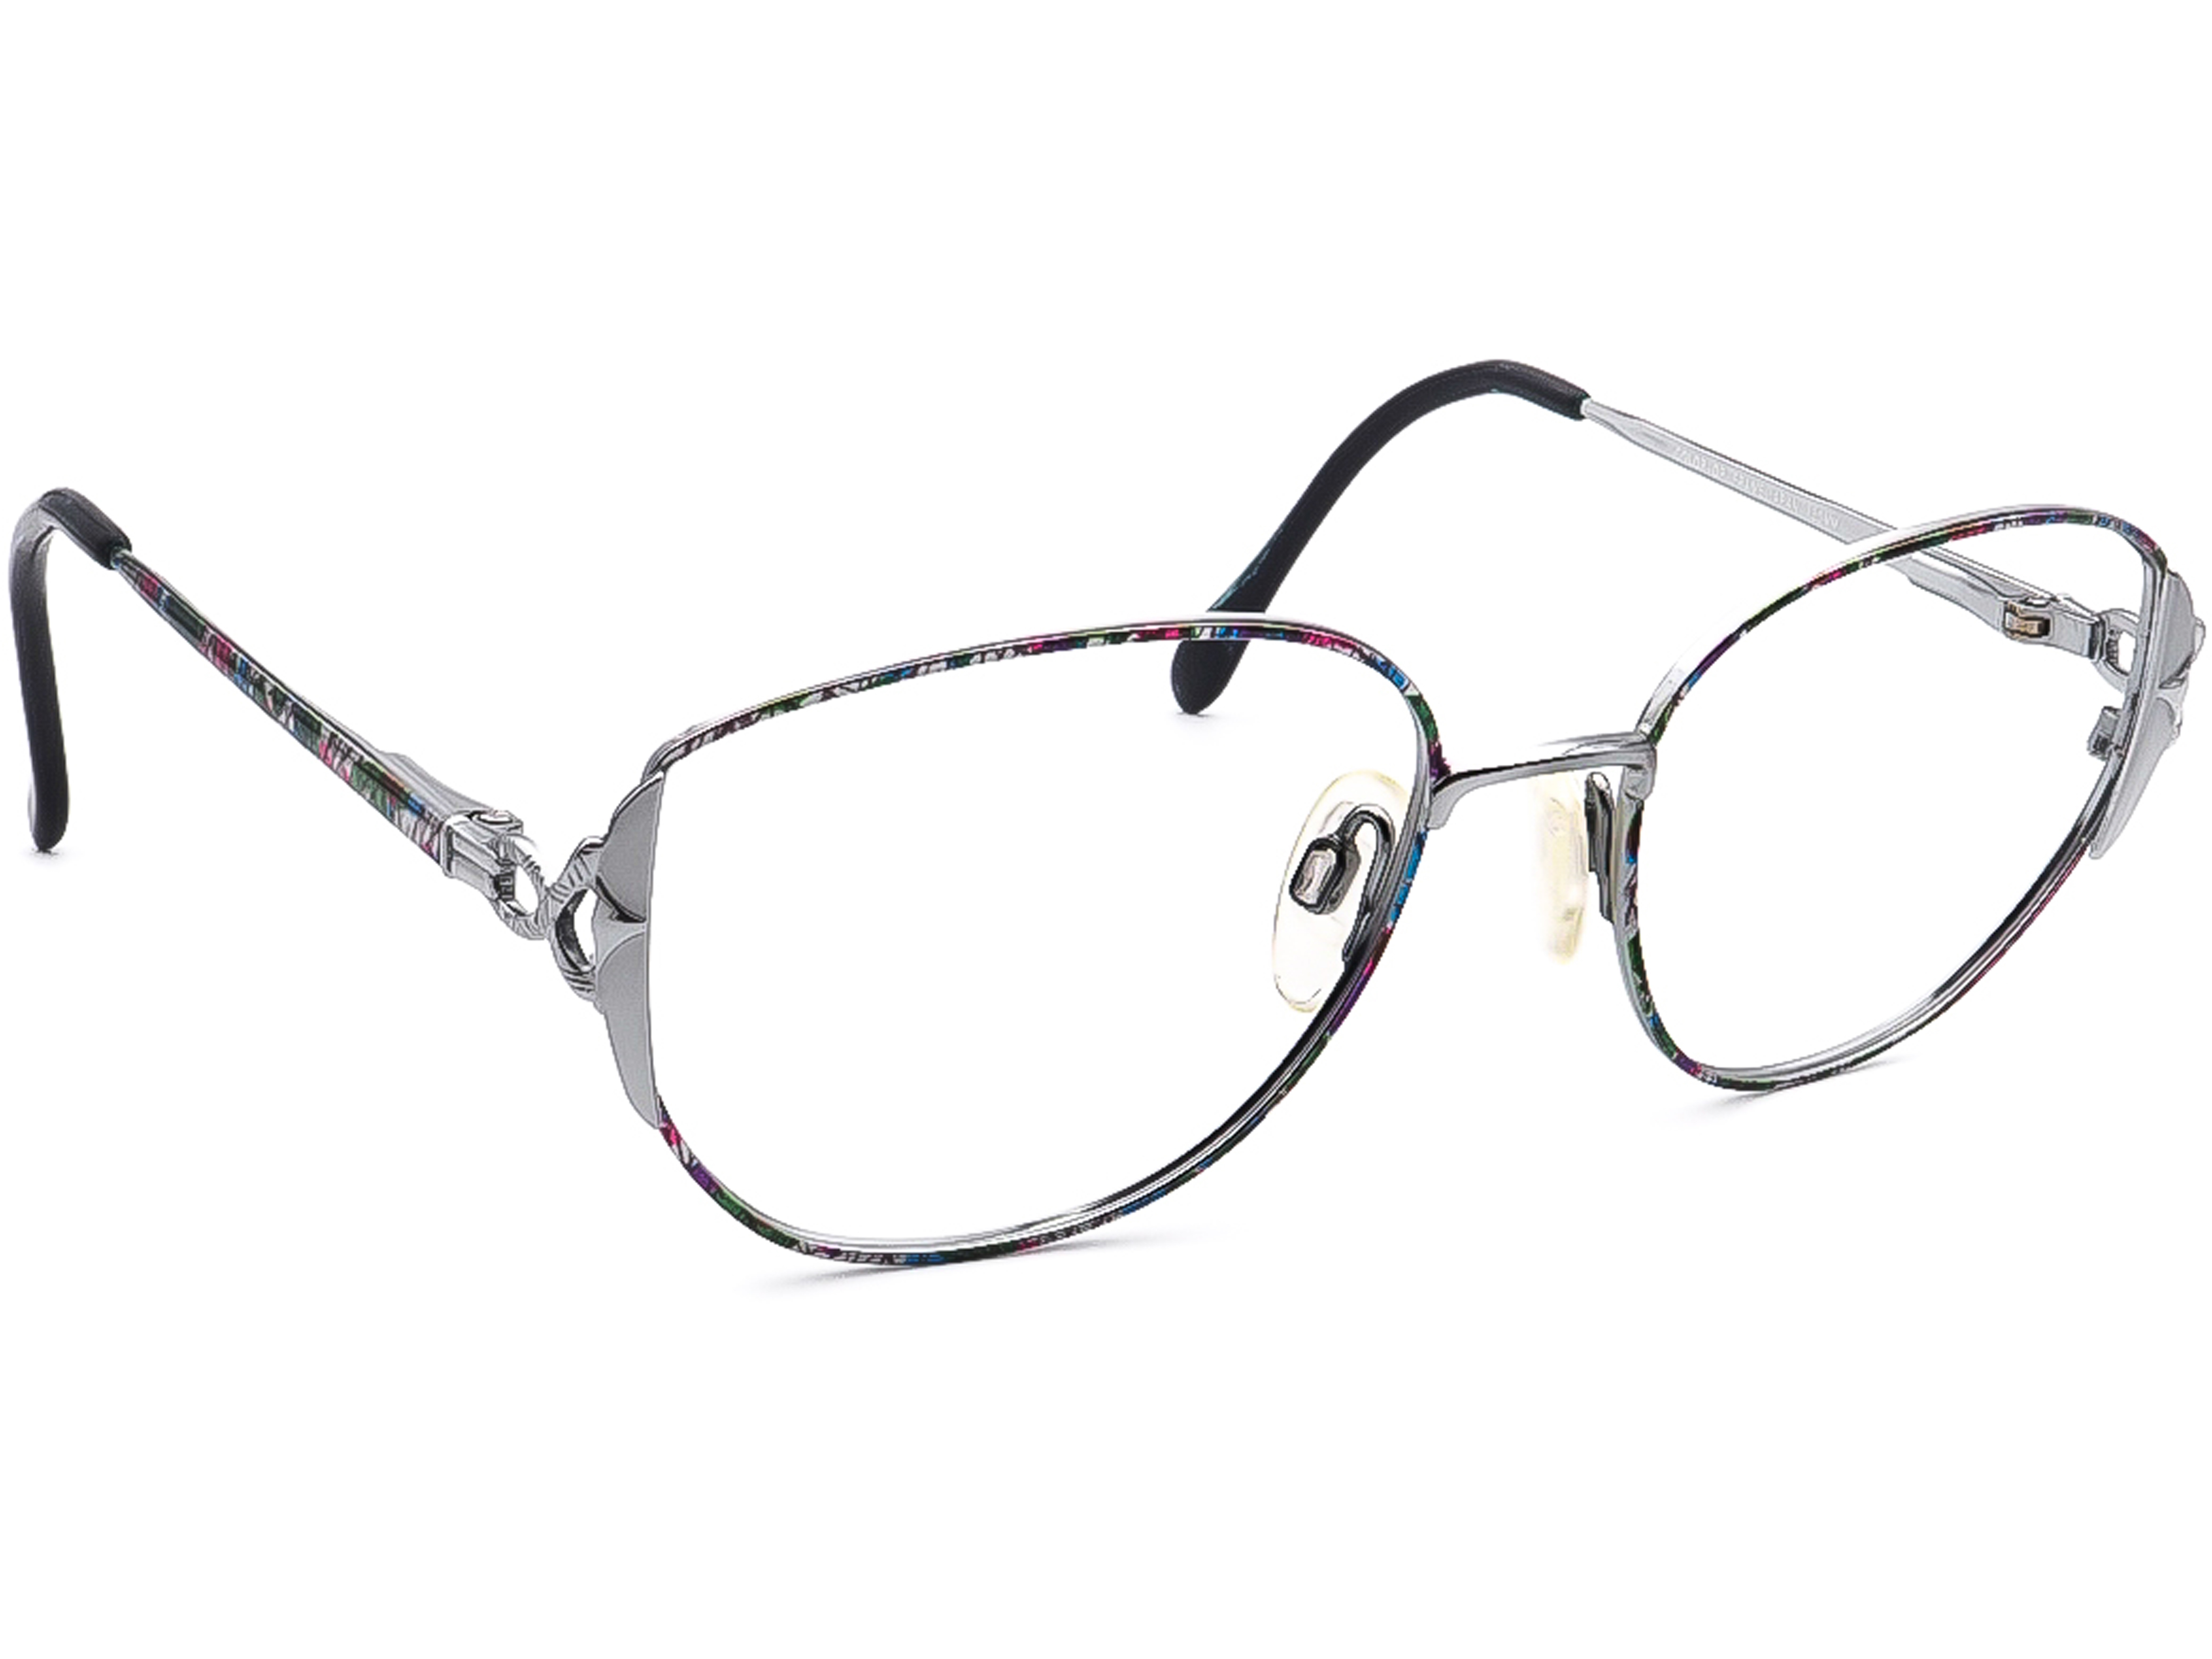 Charmant 4262 Eyeglasses